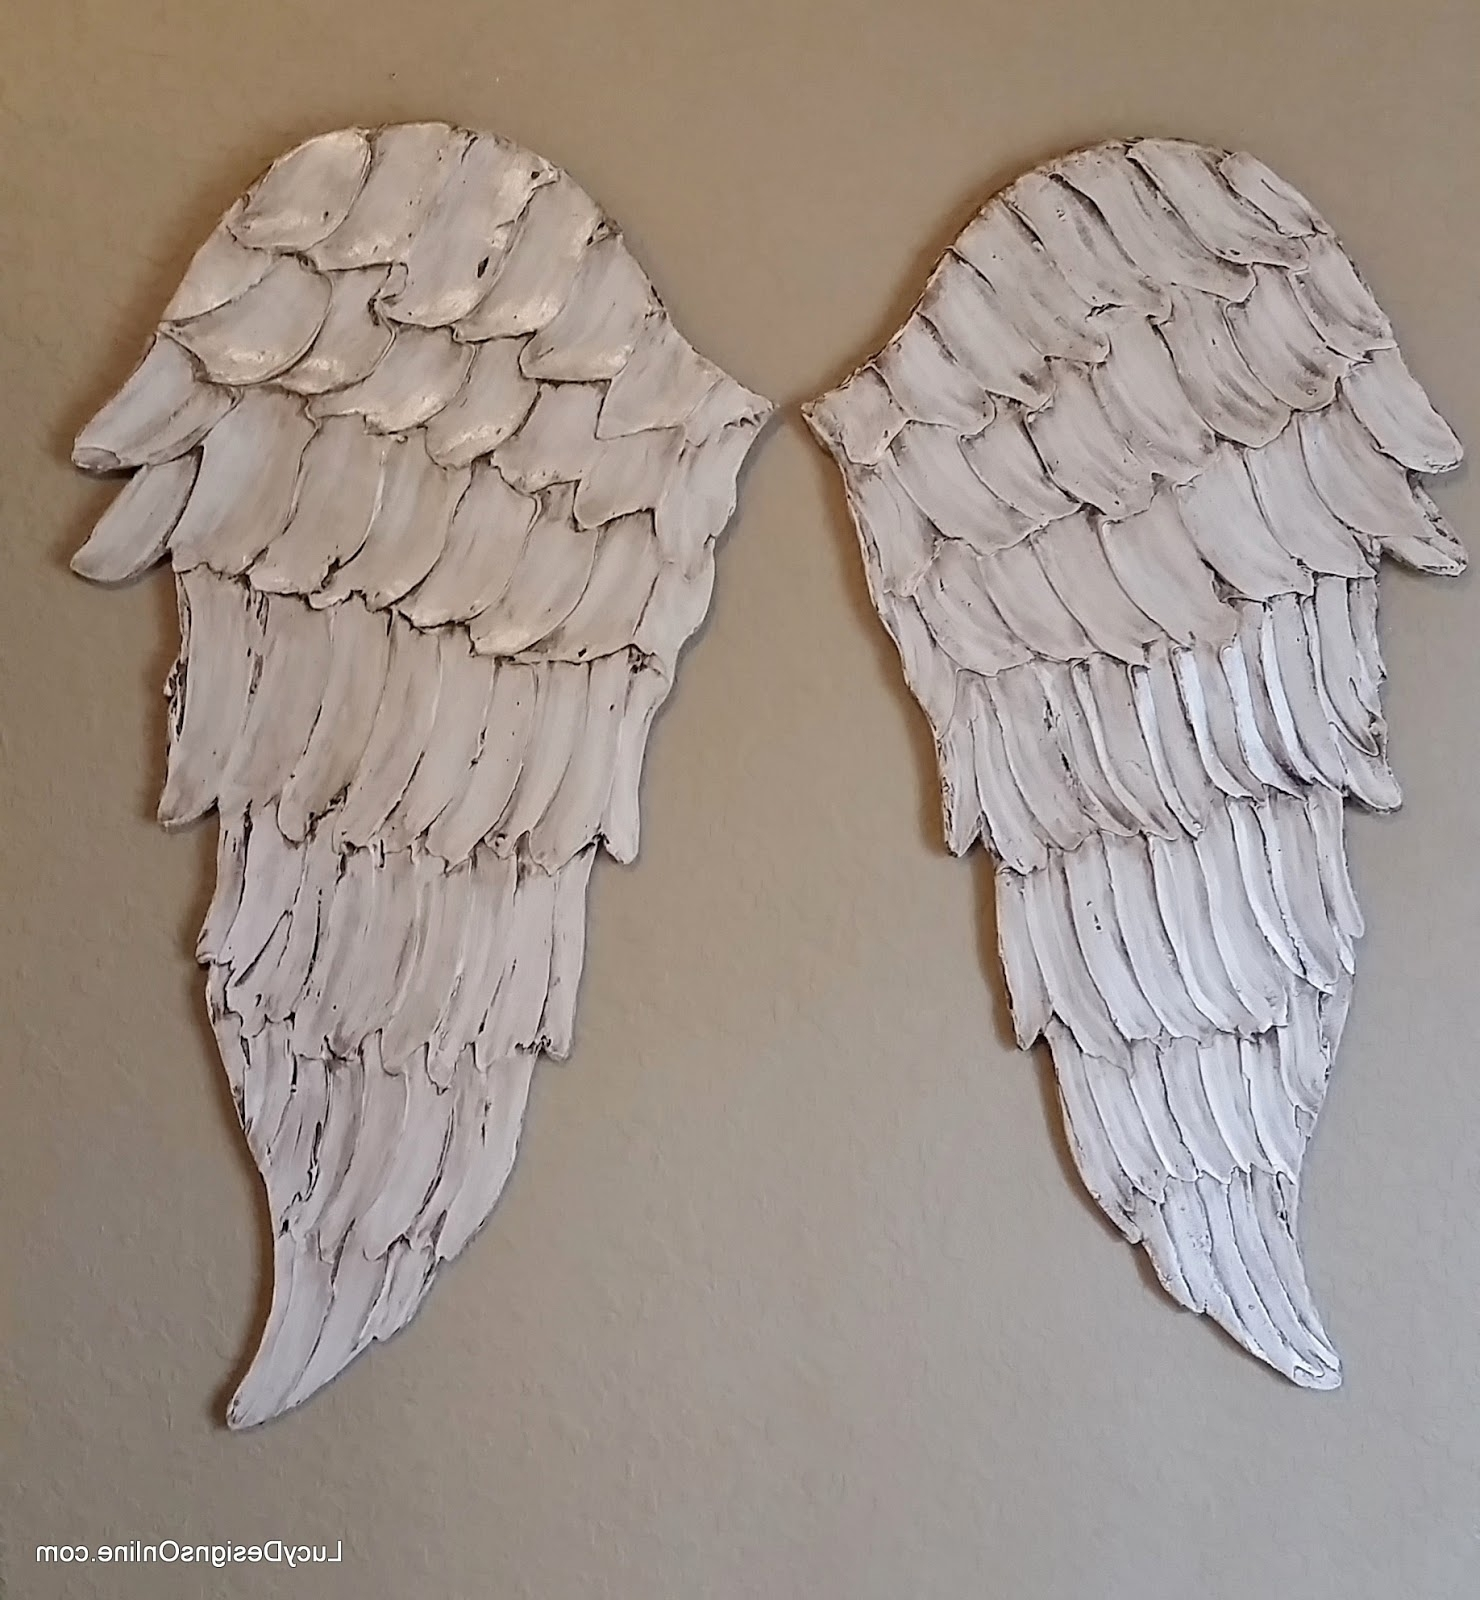 Angel Wings Textured Wood, Wall Art, Carved Wood Look, Angel Wing Intended For Popular Angel Wings Wall Art (View 1 of 15)